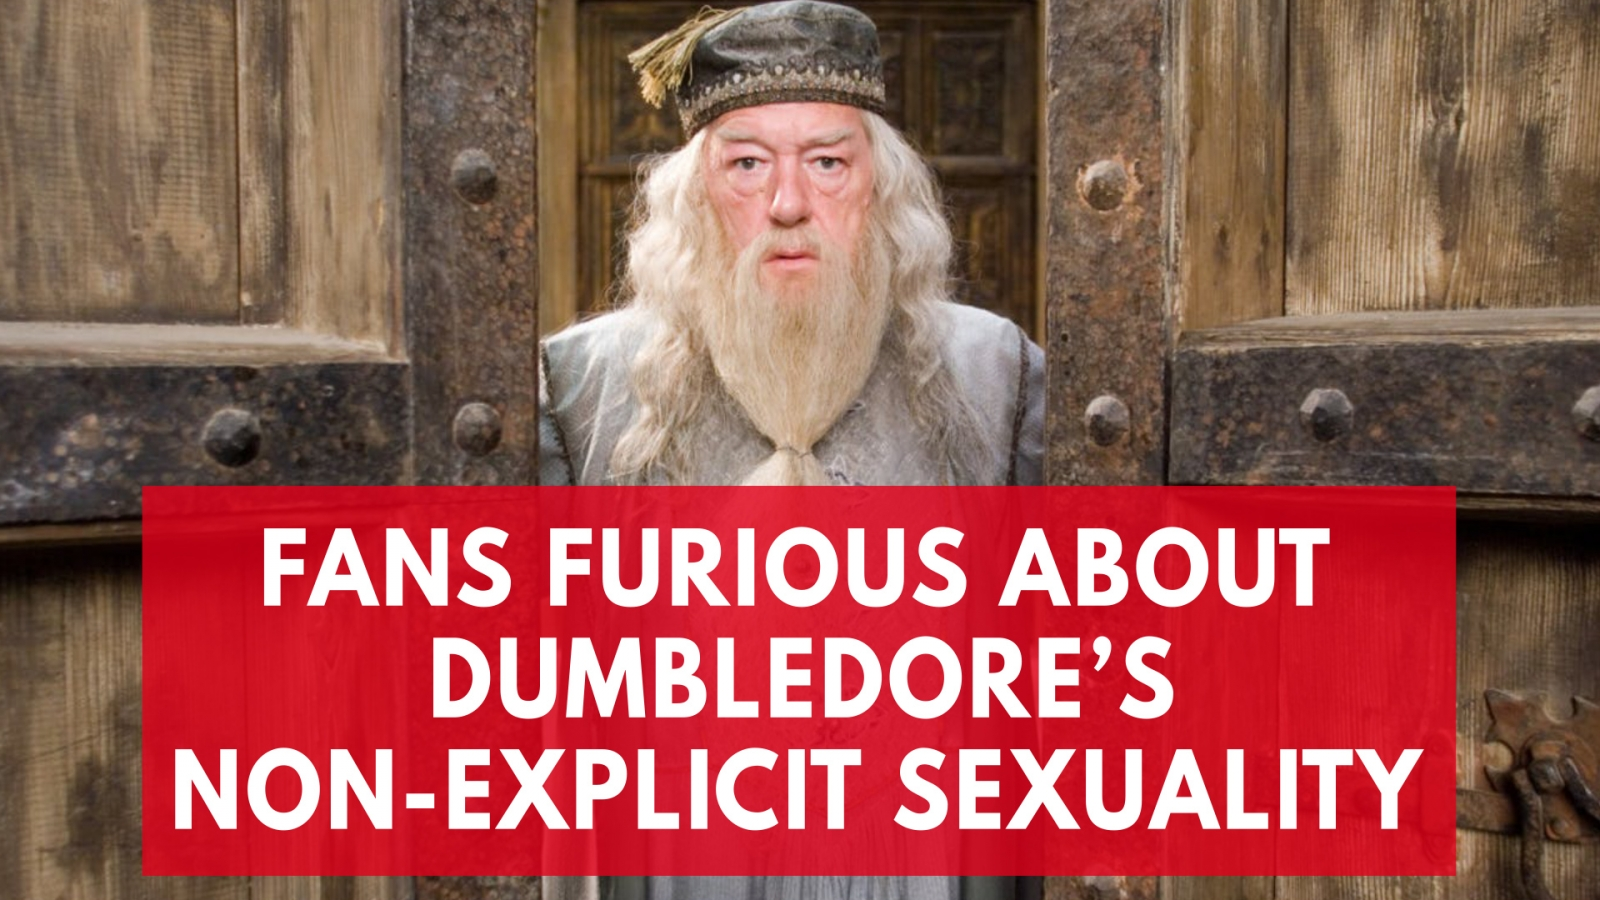 Fans are outraged Dumbledore won't be made explicitly gay in the new Fantastic Beasts movie